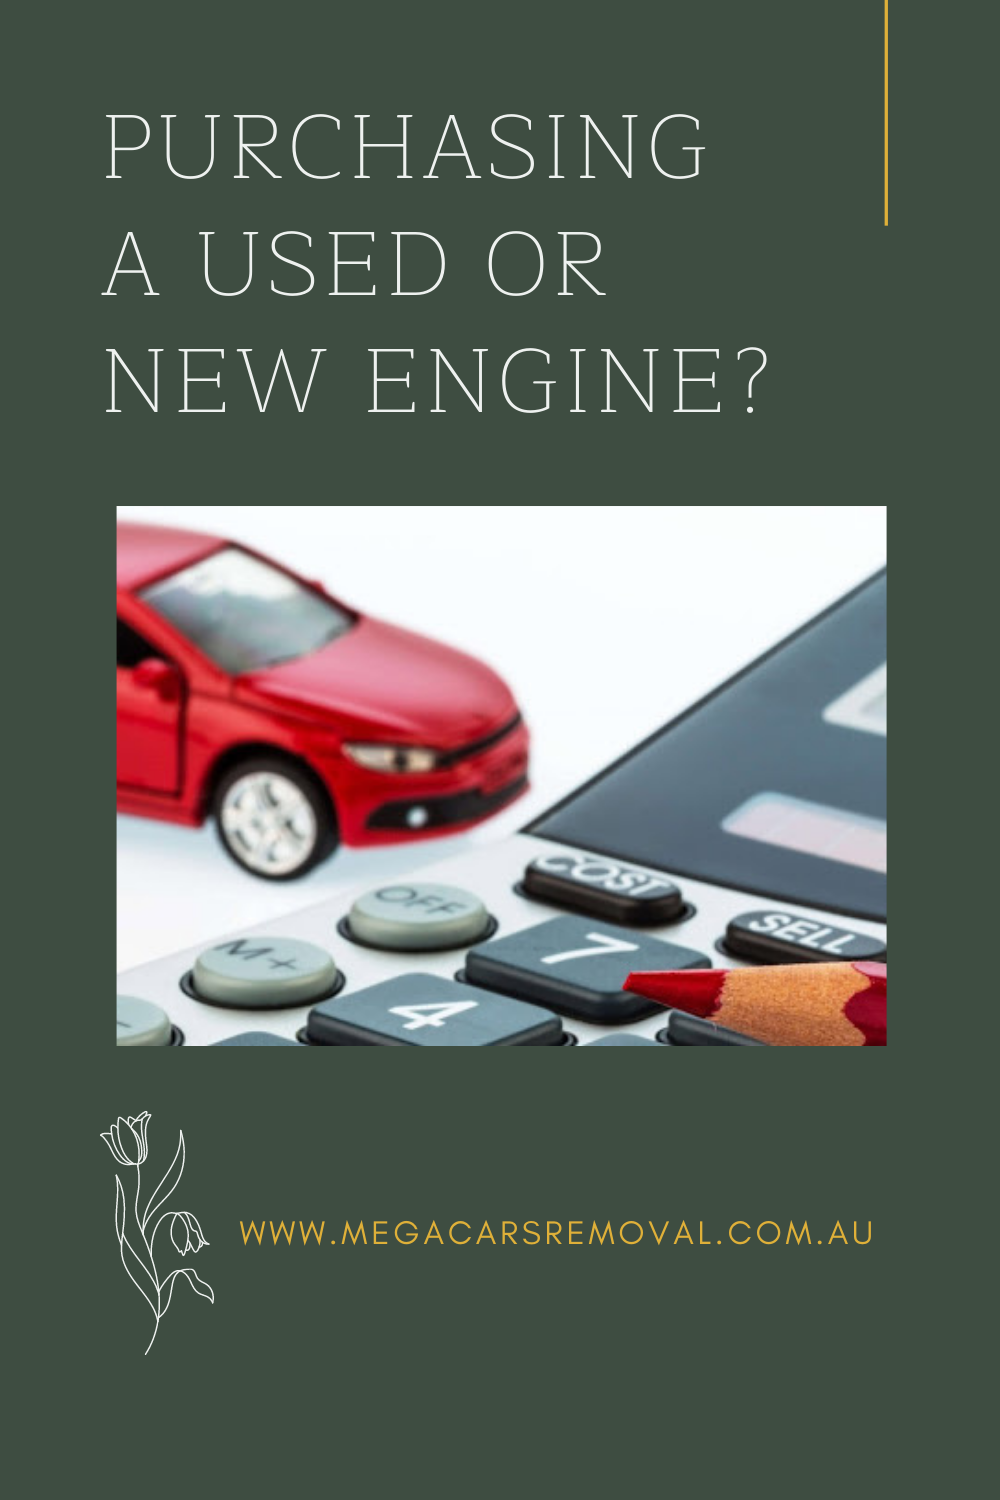 What To Consider When Purchasing A Used Or New Engine Sell Car New Engine Engineering